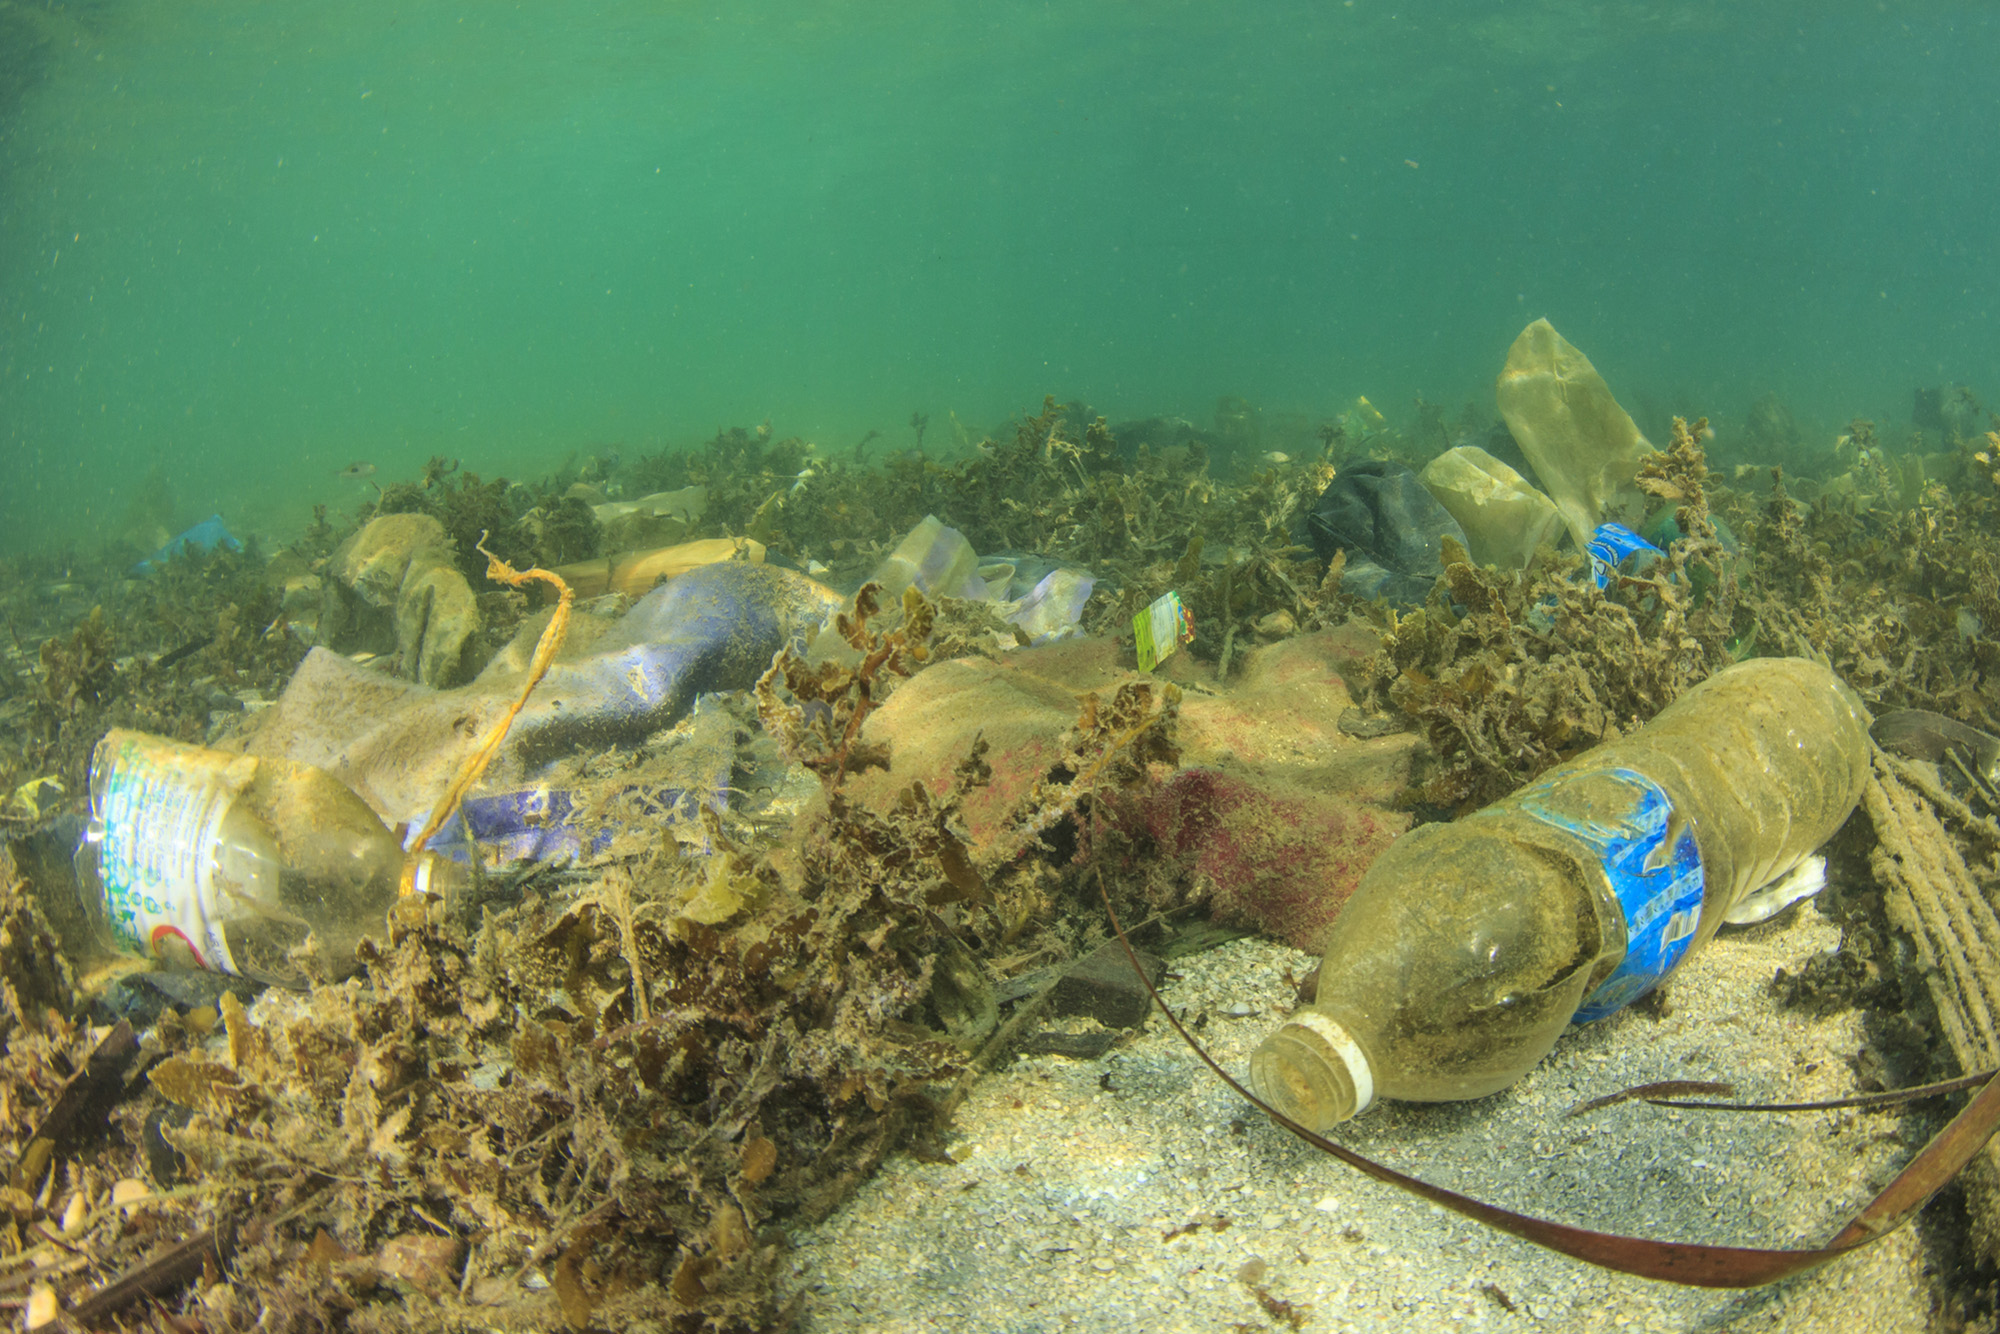 Pollution on sea-72 ppi